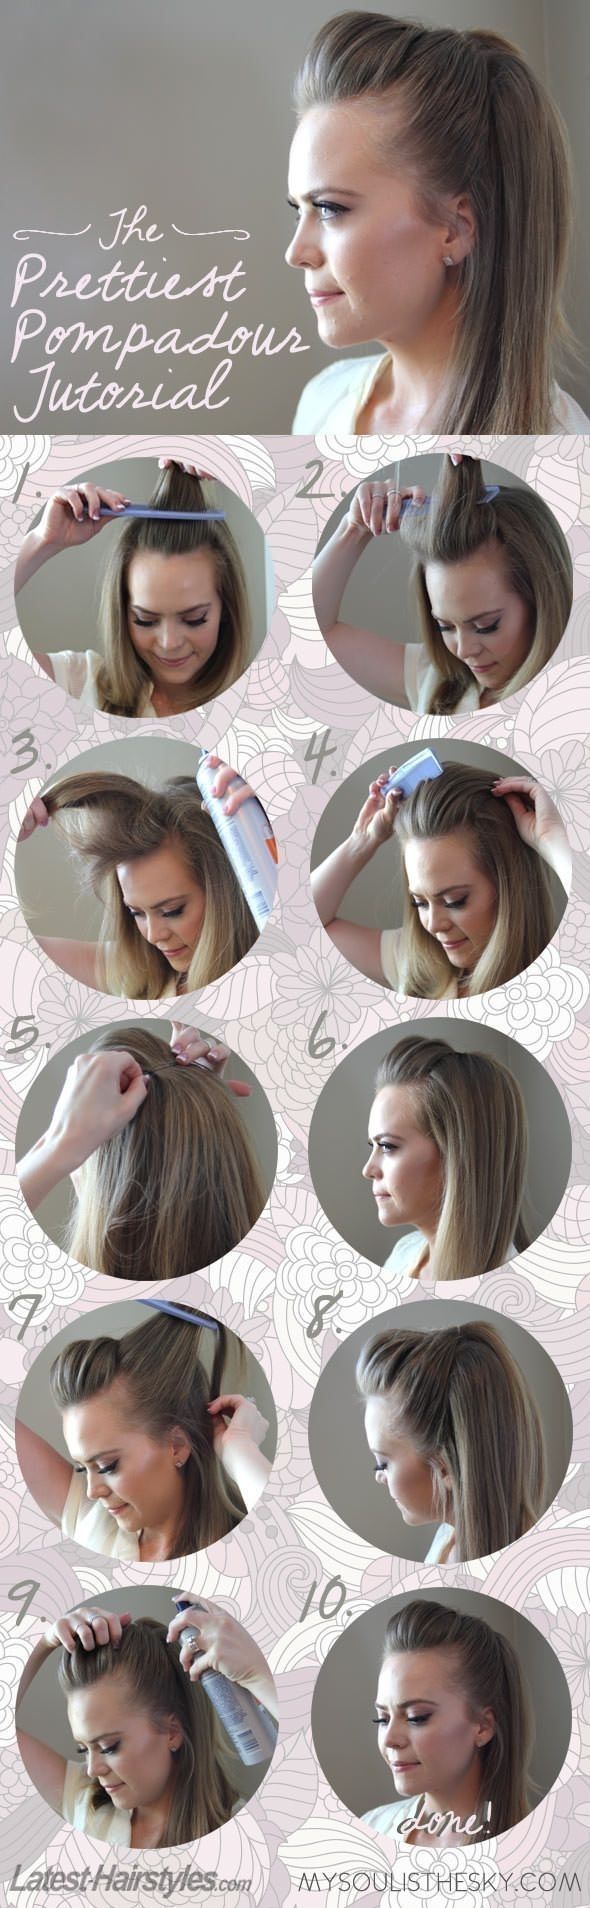 23 Five-Minute Hairstyles For Busy Mornings - http://1pic4u.com/2015/09/08/23-five-minute-hairstyles-for-busy-mornings/